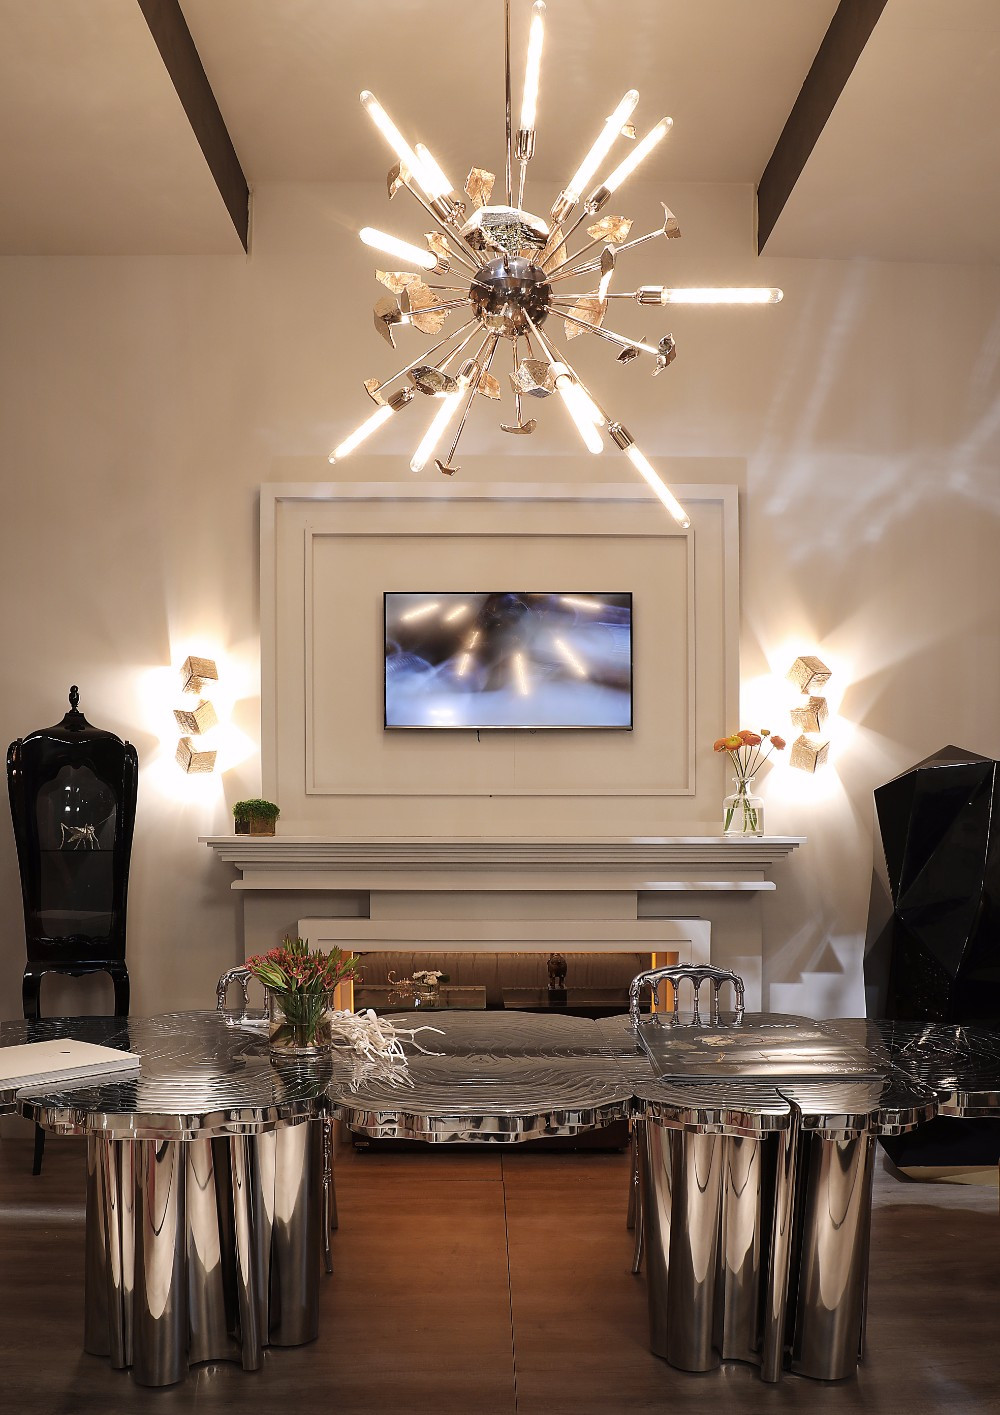 Modern Living Room Chandelier  Top 10 Chandeliers for Your Living Room Decor